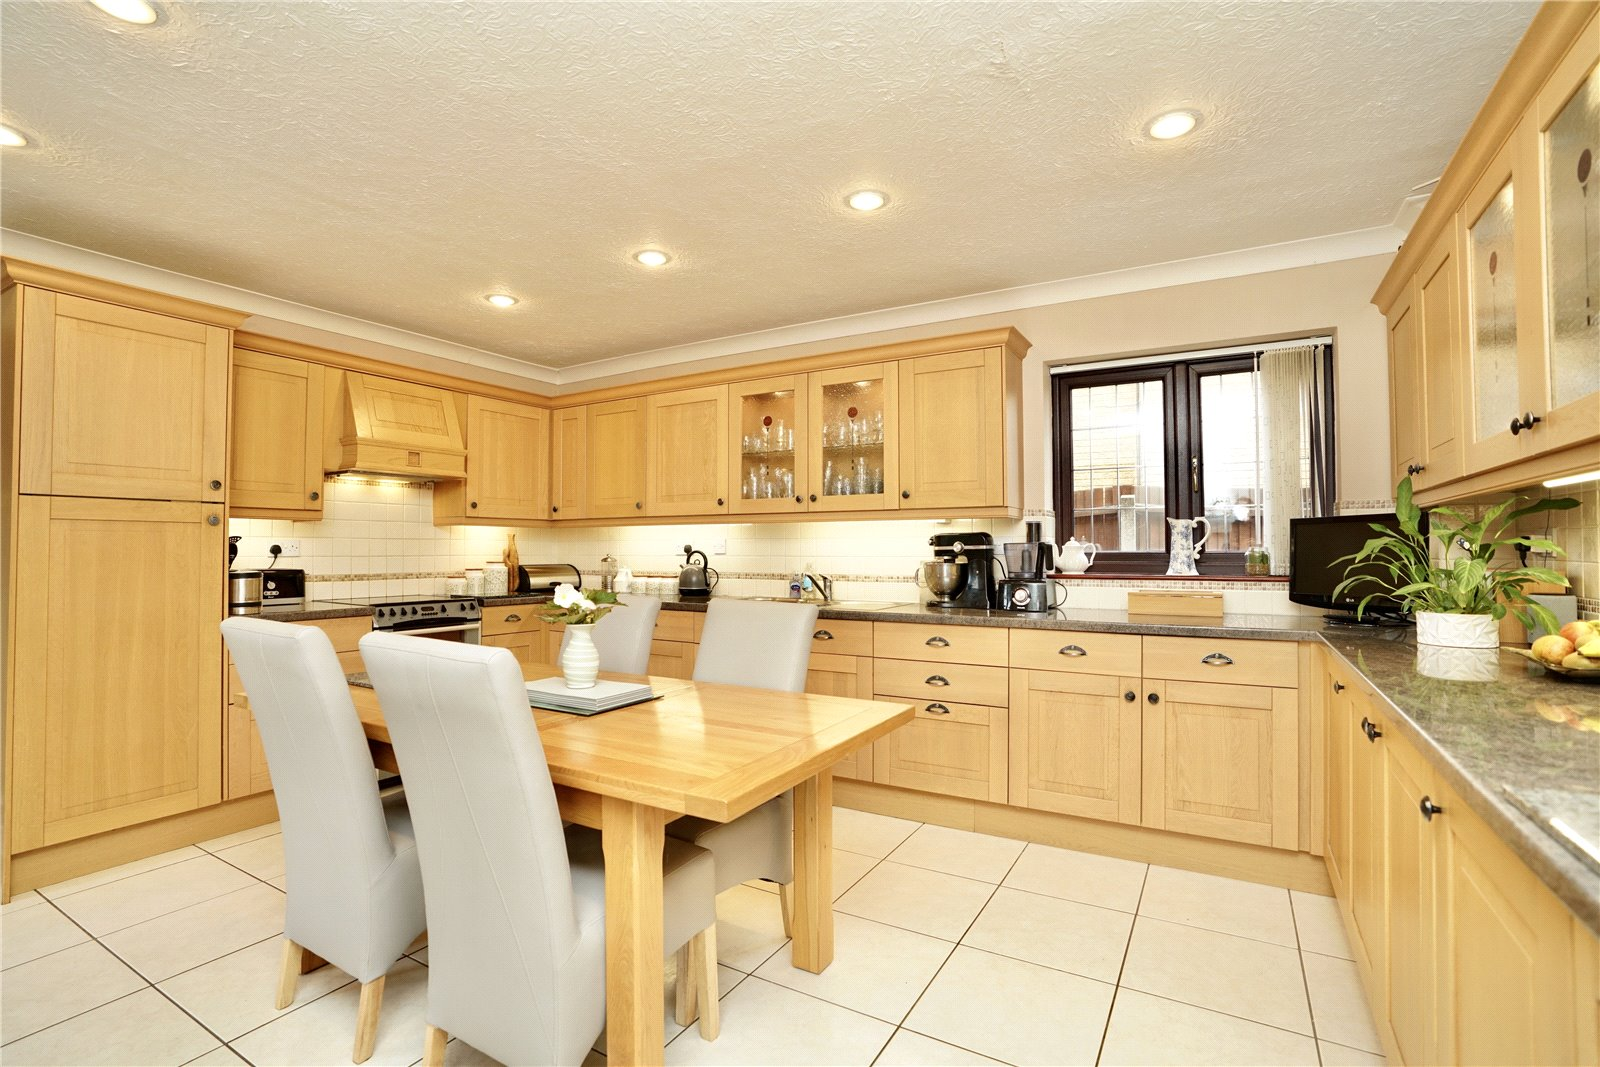 5 bed house for sale in Great North Road, Eaton Ford  - Property Image 3